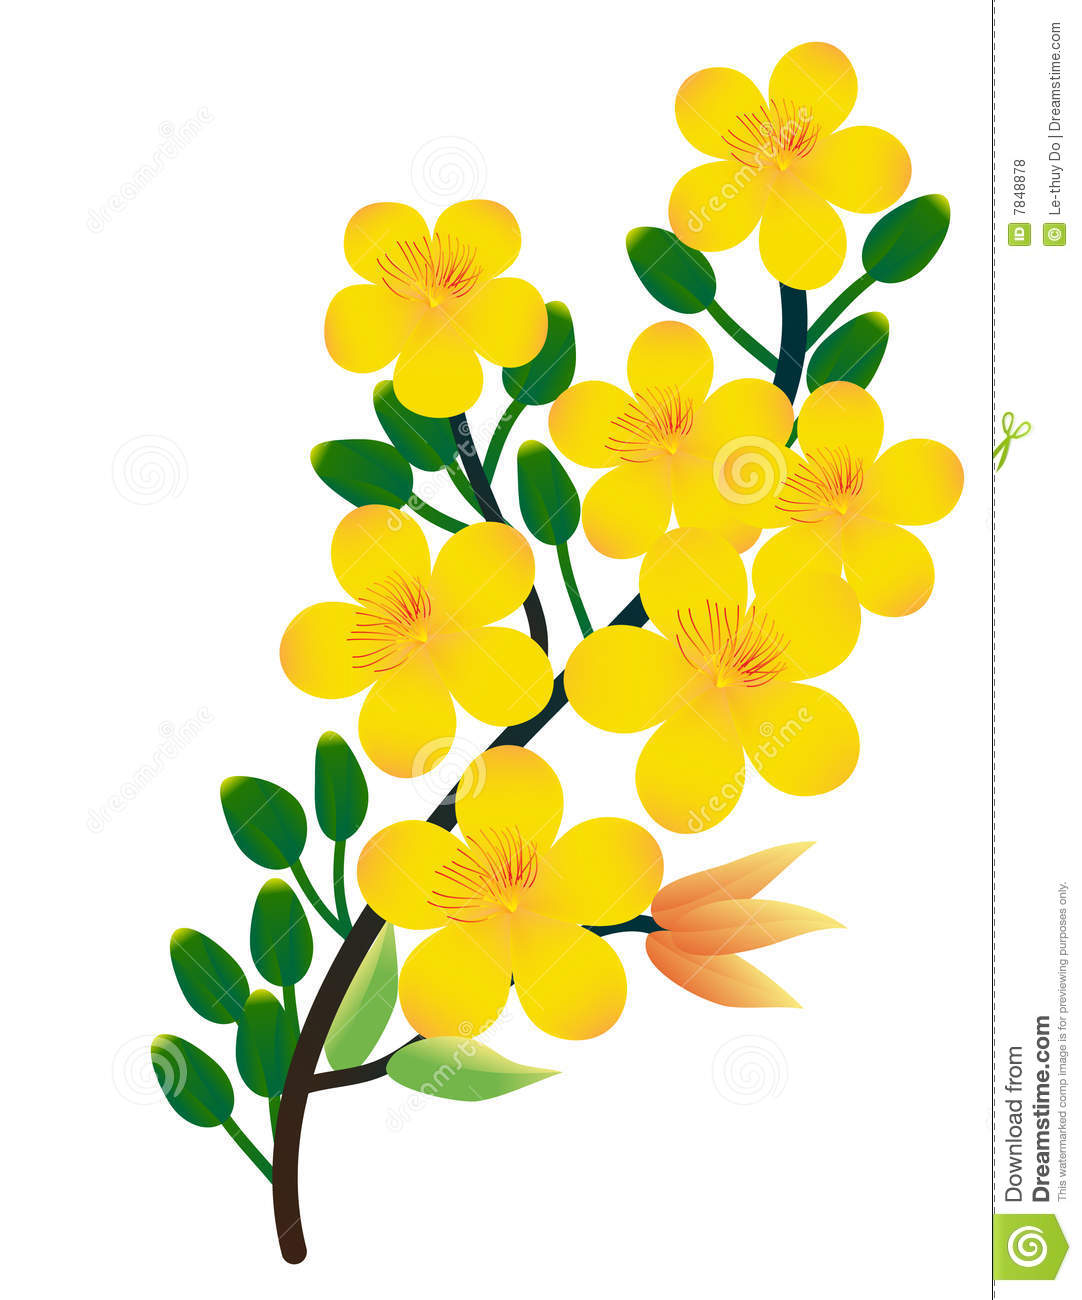 Ochna Integerrima stock illustration. Illustration of ...